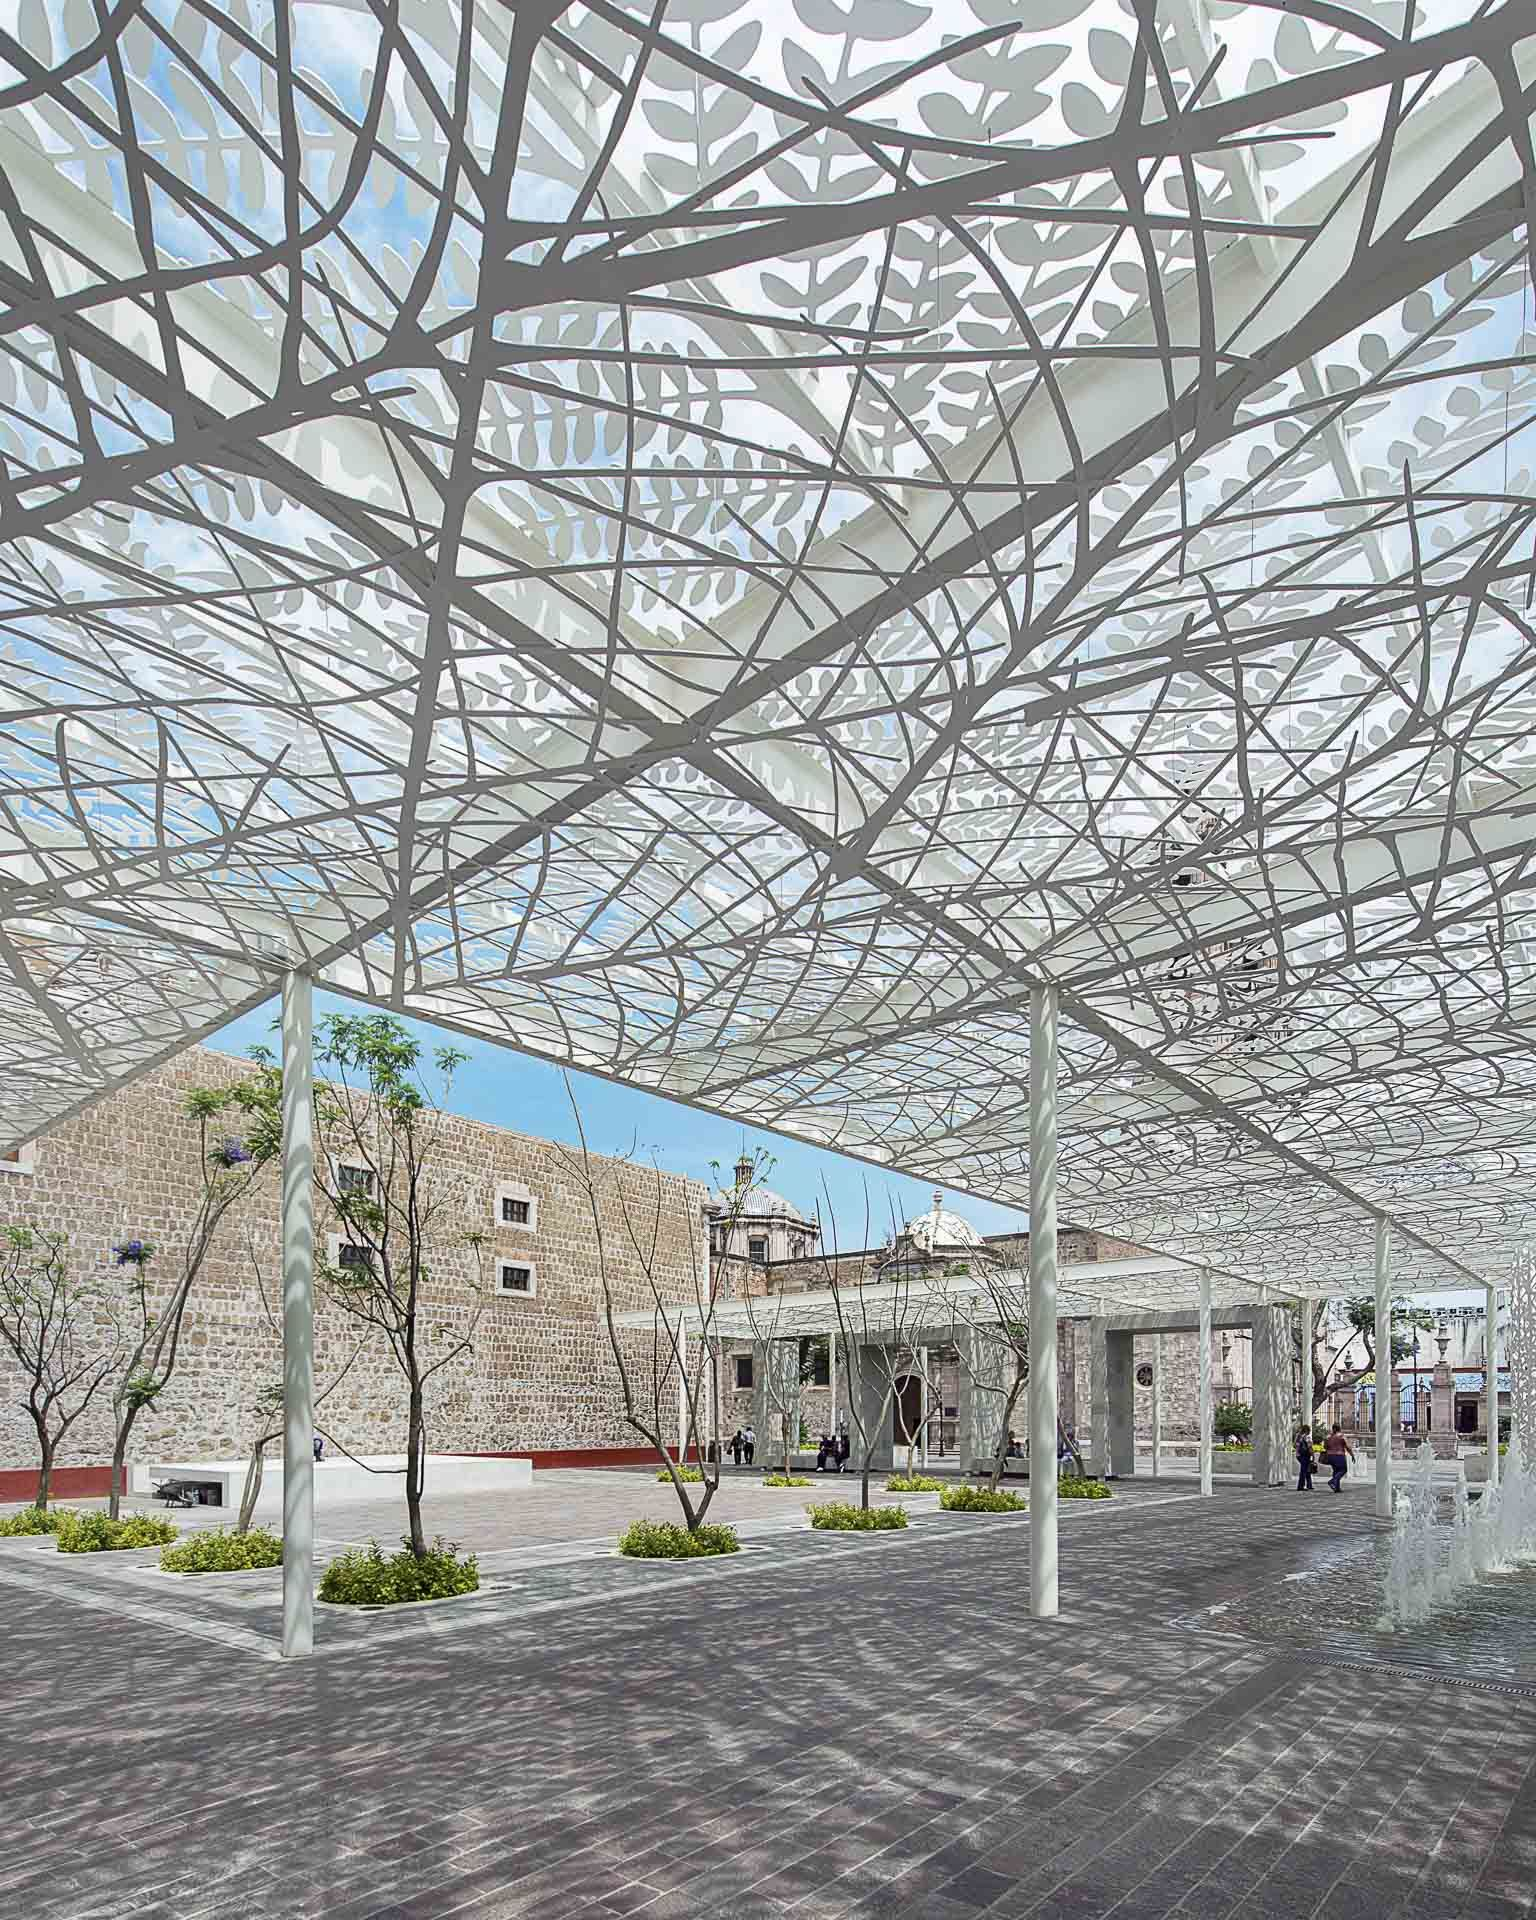 Photo Of Perforated Metal Canopy Casts Shadows At